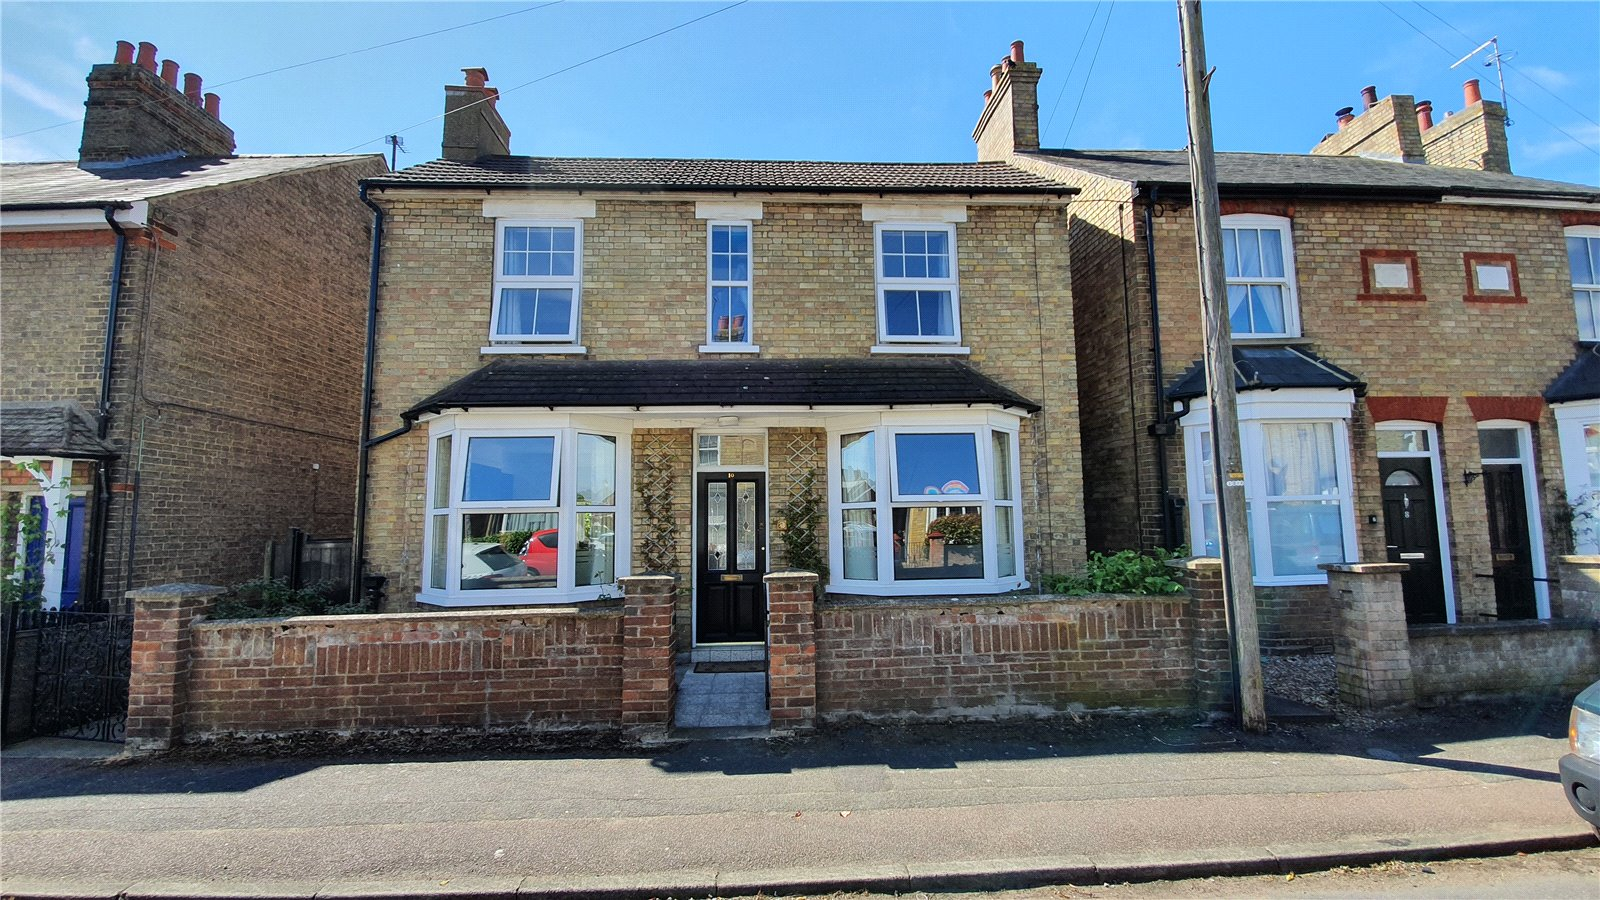 3 bed house for sale in Shaftesbury Avenue, St. Neots  - Property Image 5